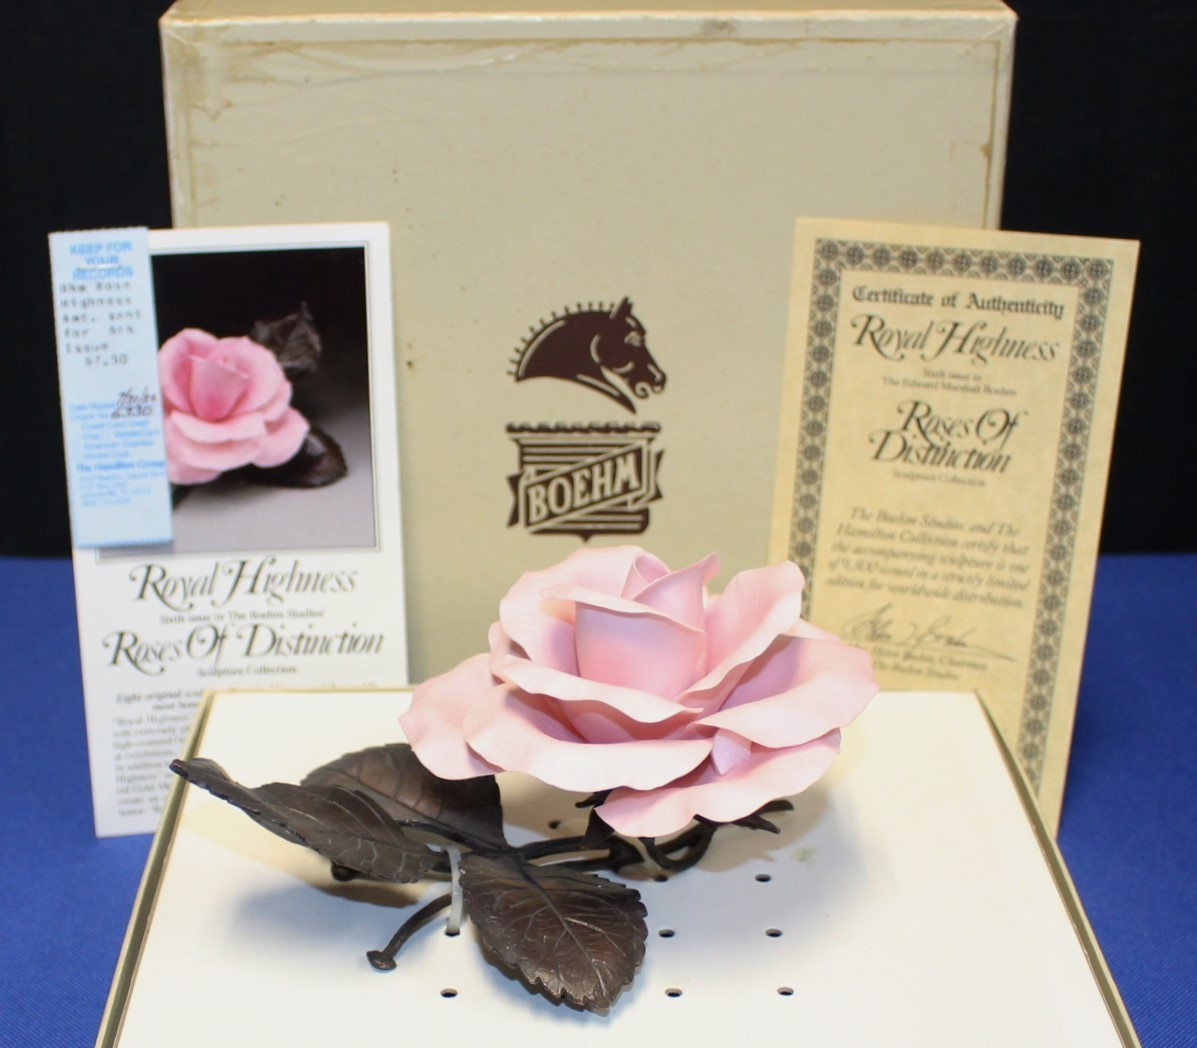 Boehm Porcelain & Bronze Royal Highness Pink Rose Sculpture Figurine, Box & COA